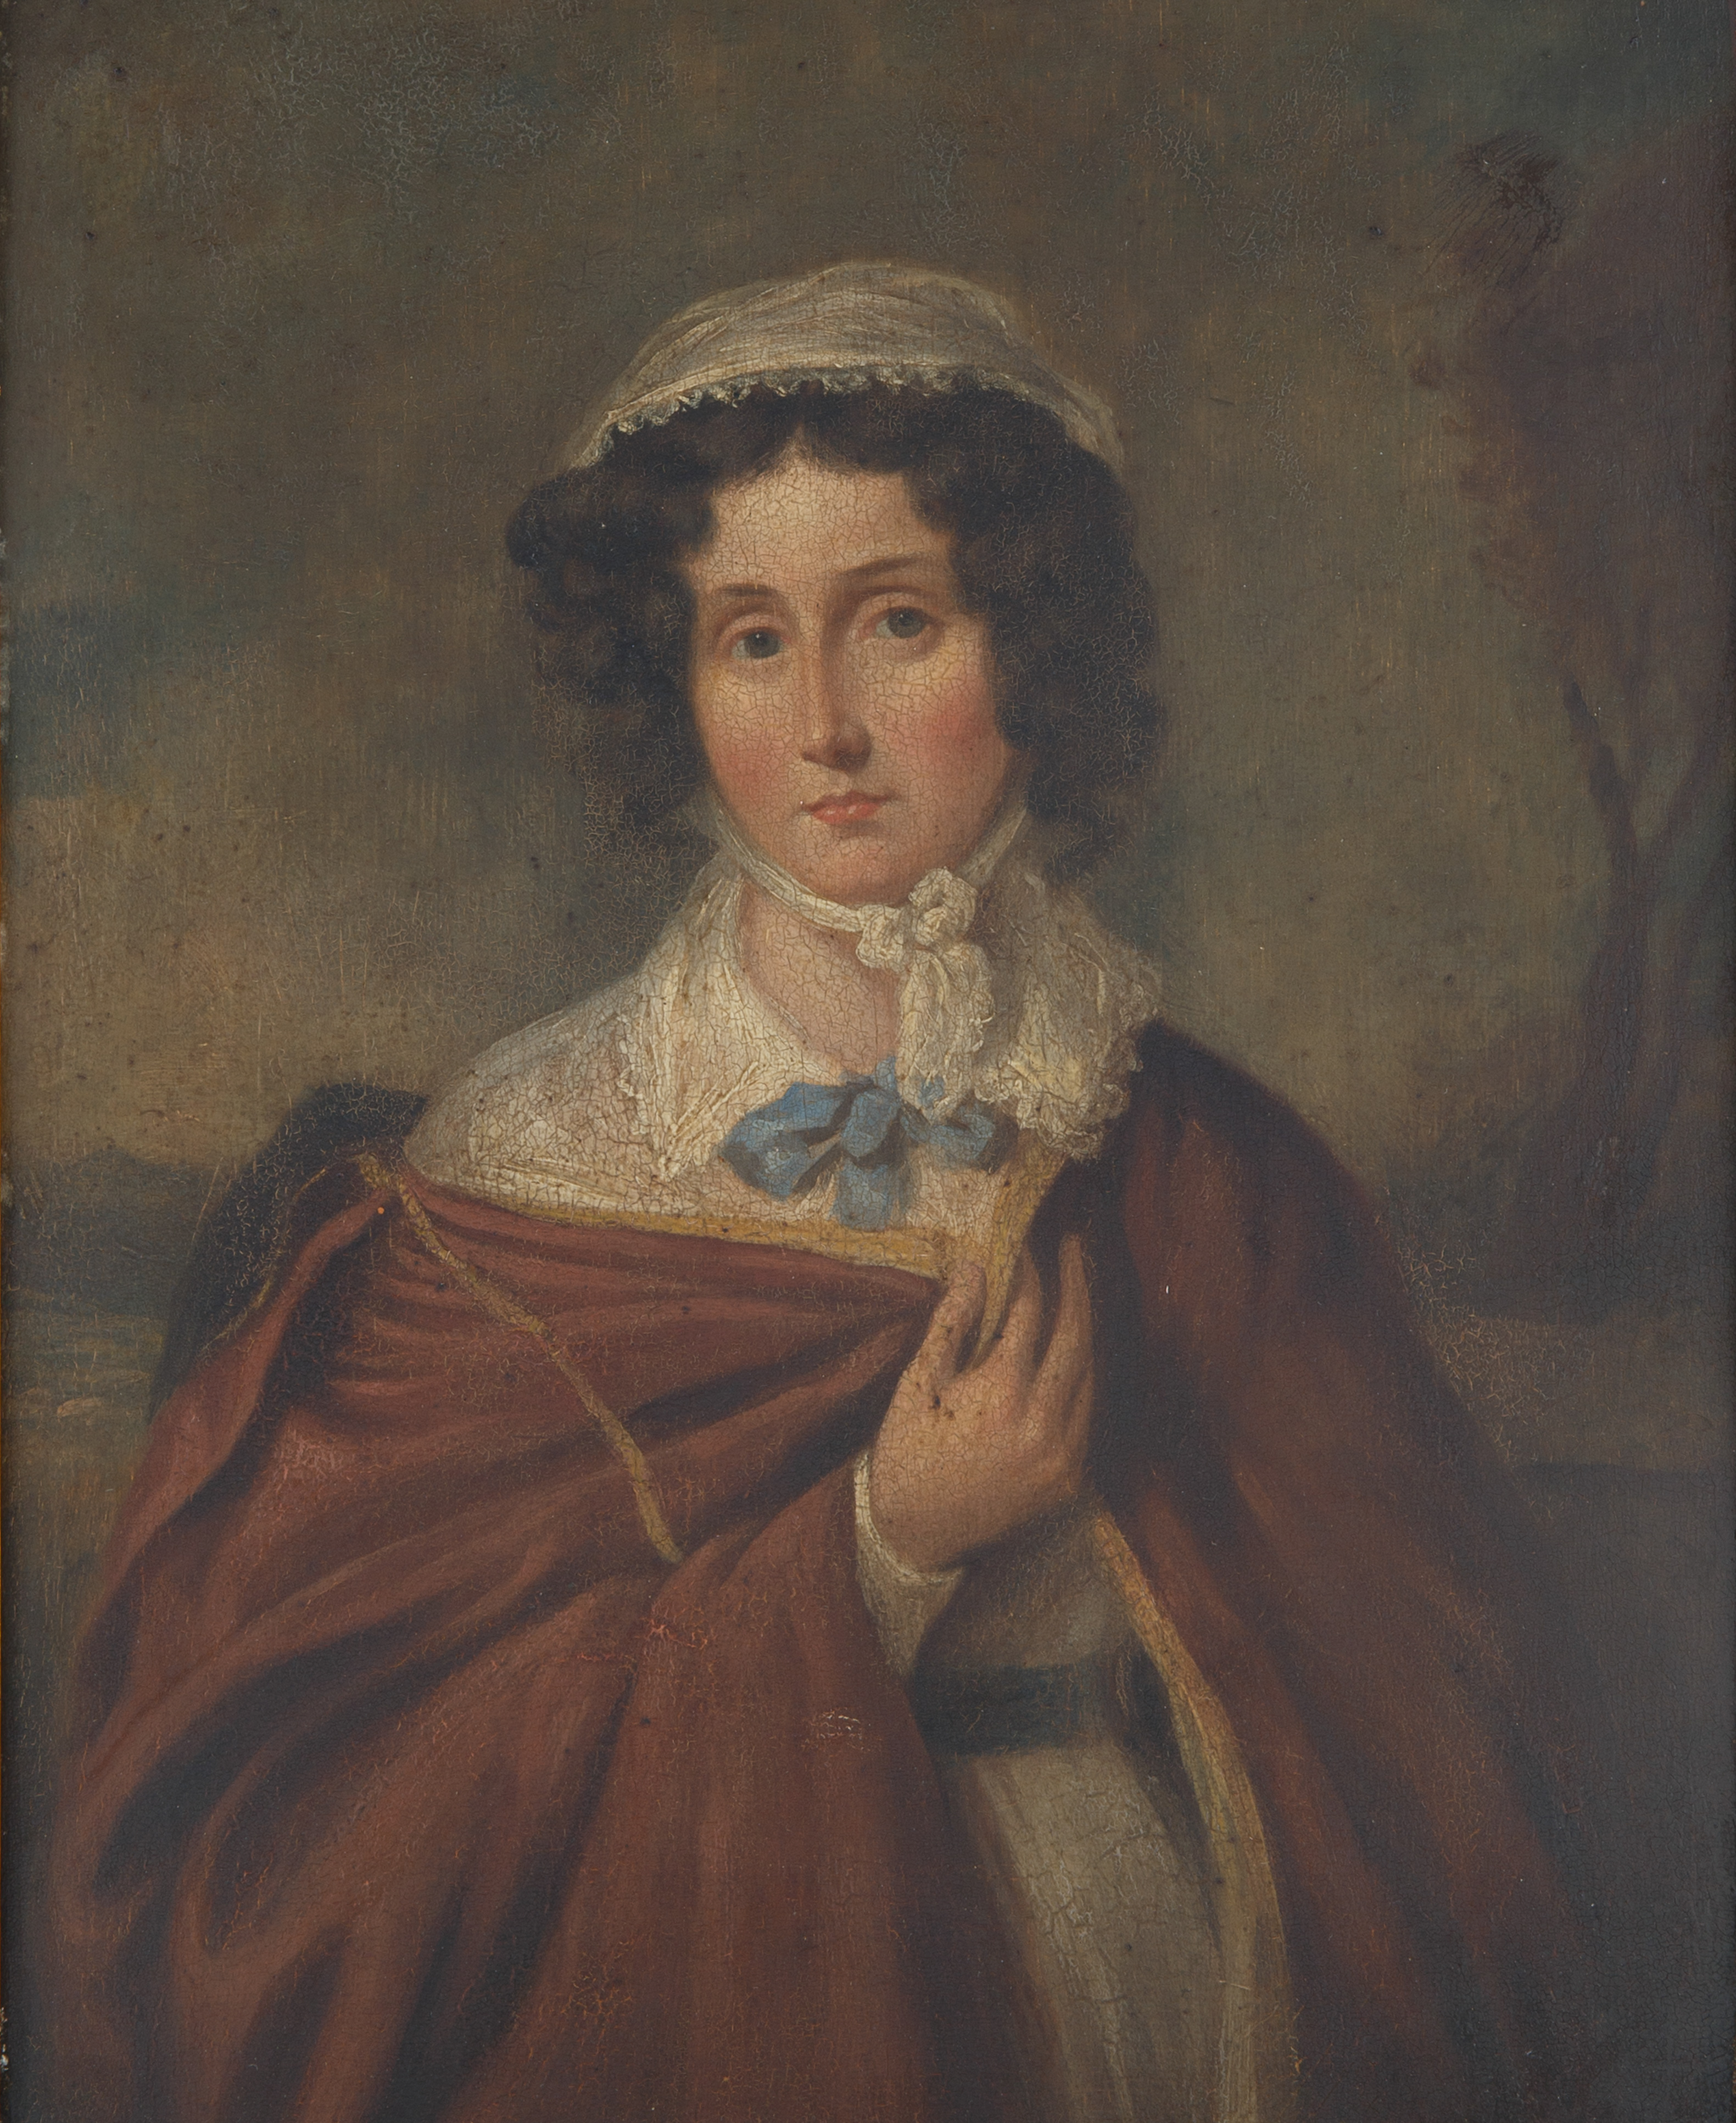 19TH CENTURY WEDDING PORTRAITS BY AMERICAN ARTISTS - Image 3 of 8